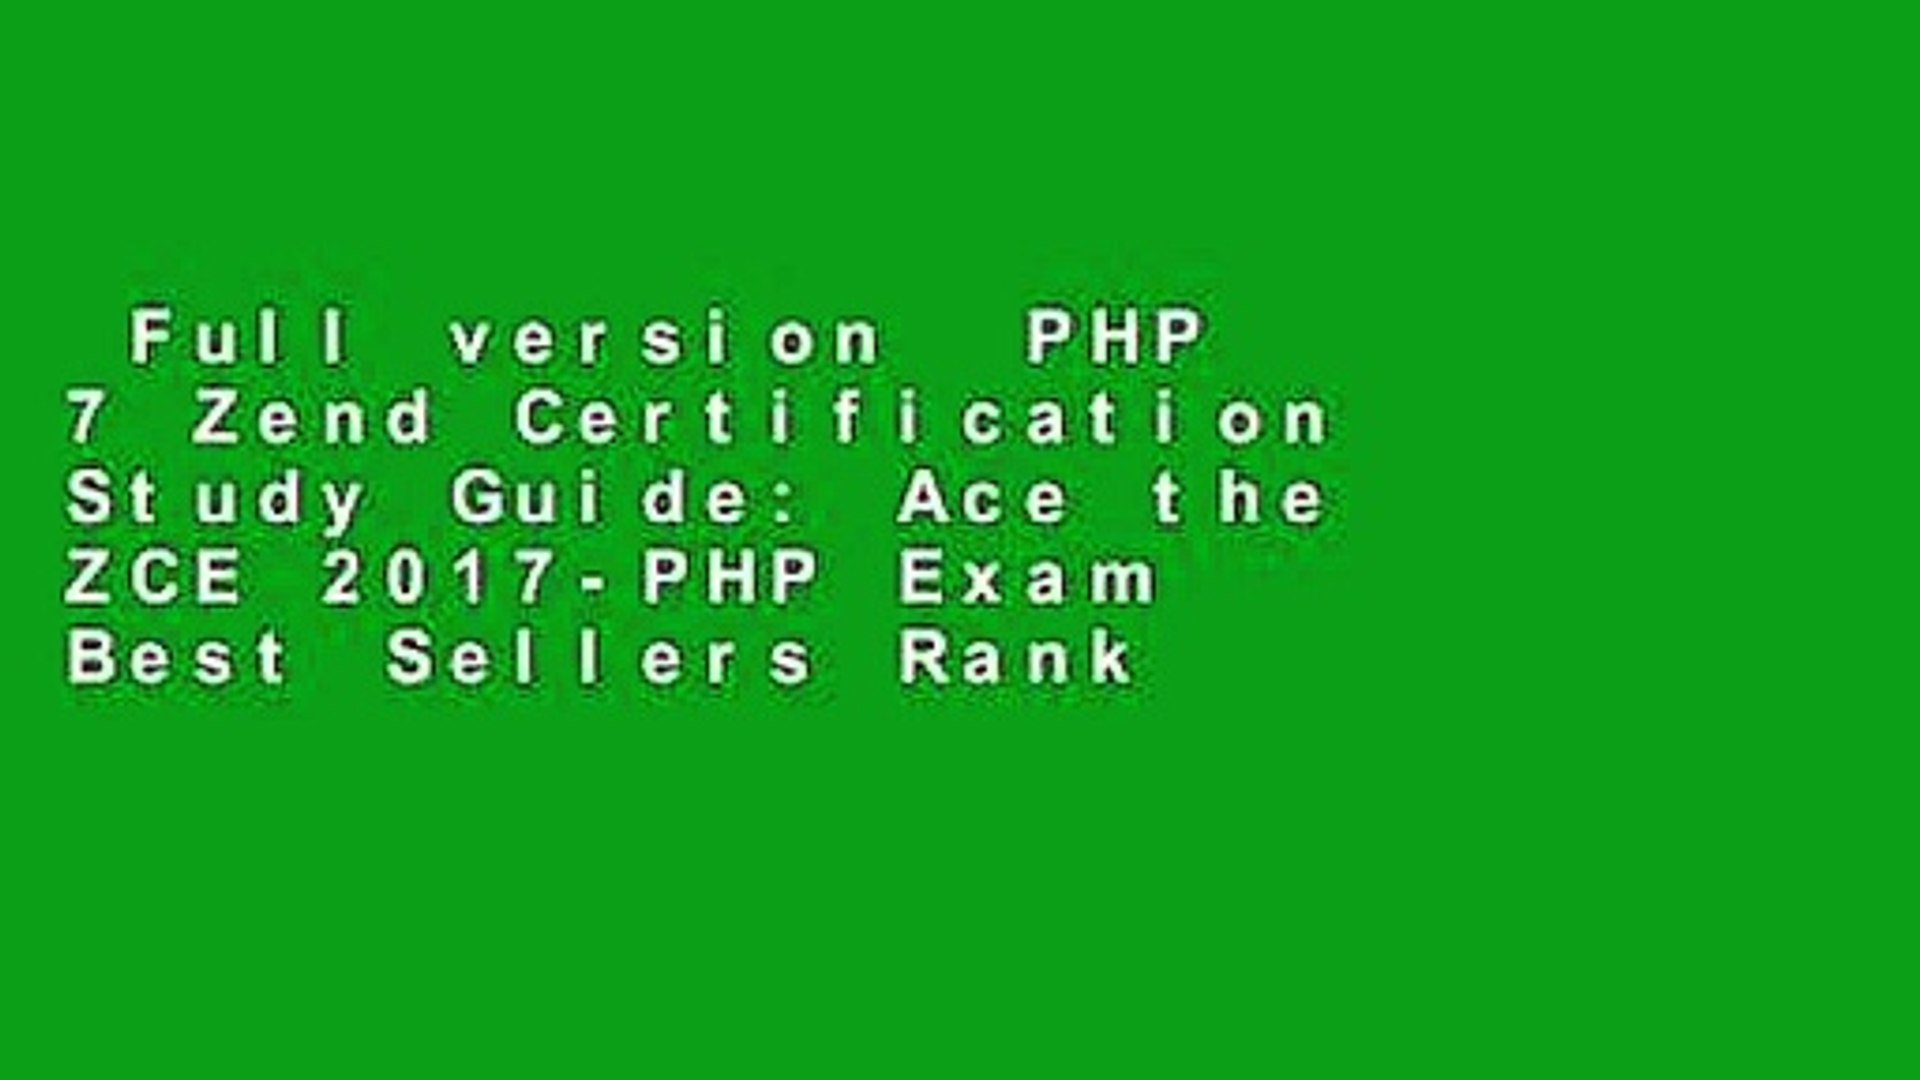 Full version  PHP 7 Zend Certification Study Guide: Ace the ZCE 2017-PHP Exam  Best Sellers Rank